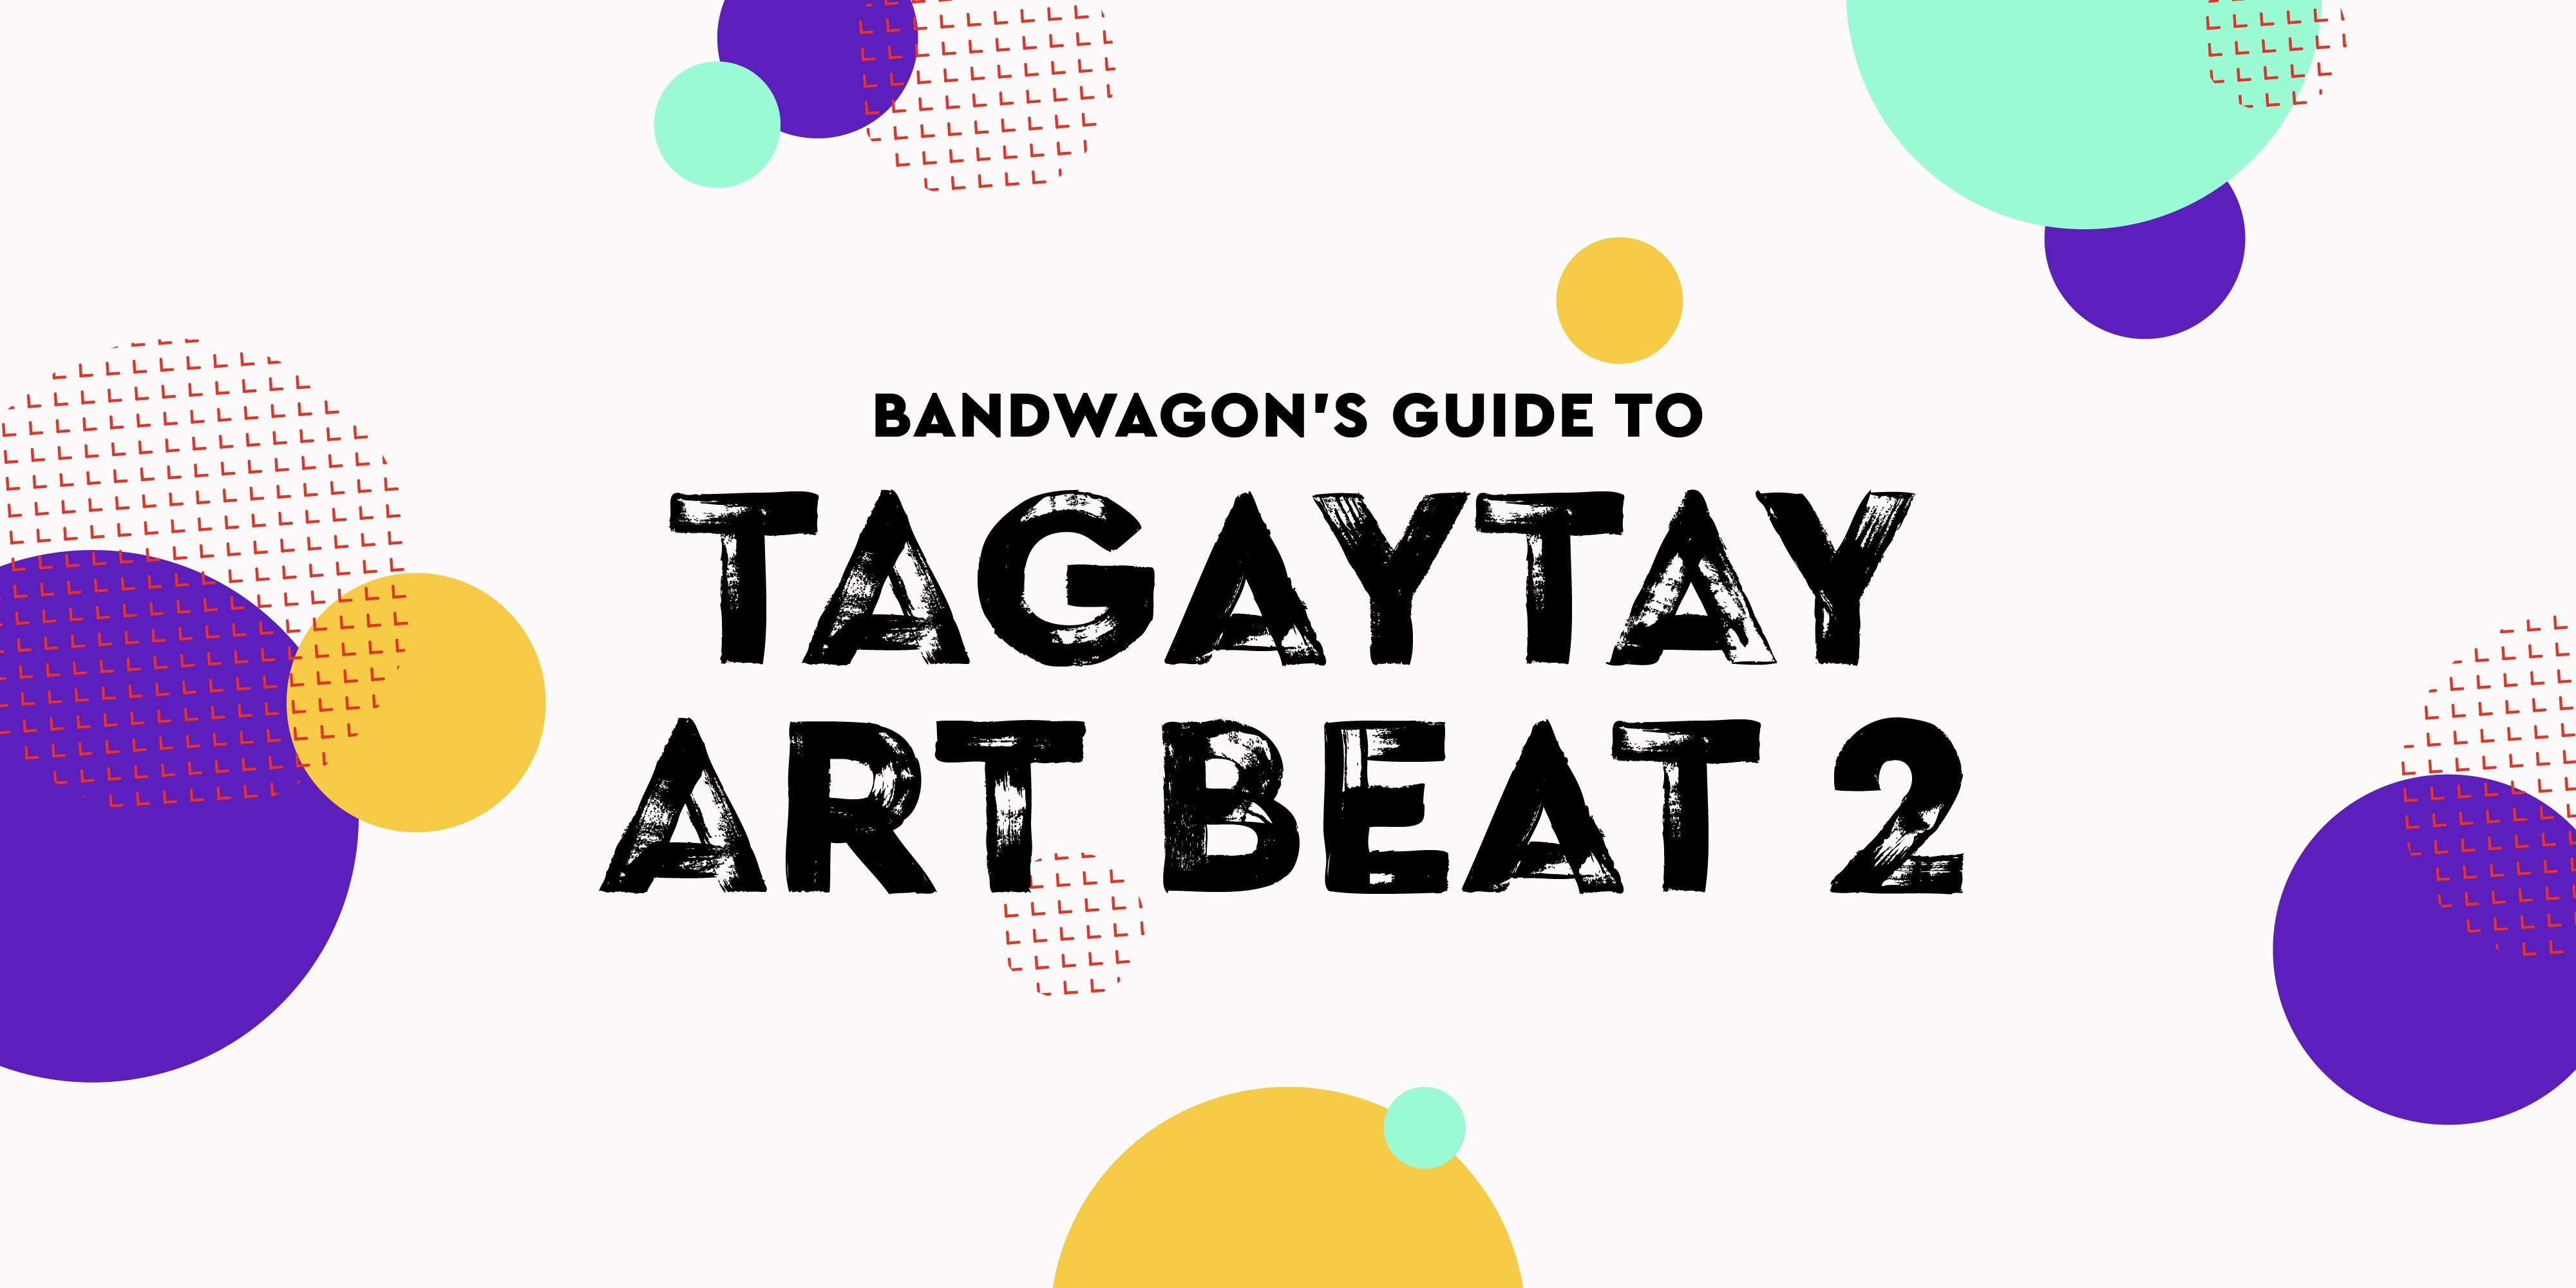 Bandwagon's Guide to Tagaytay Art Beat 2